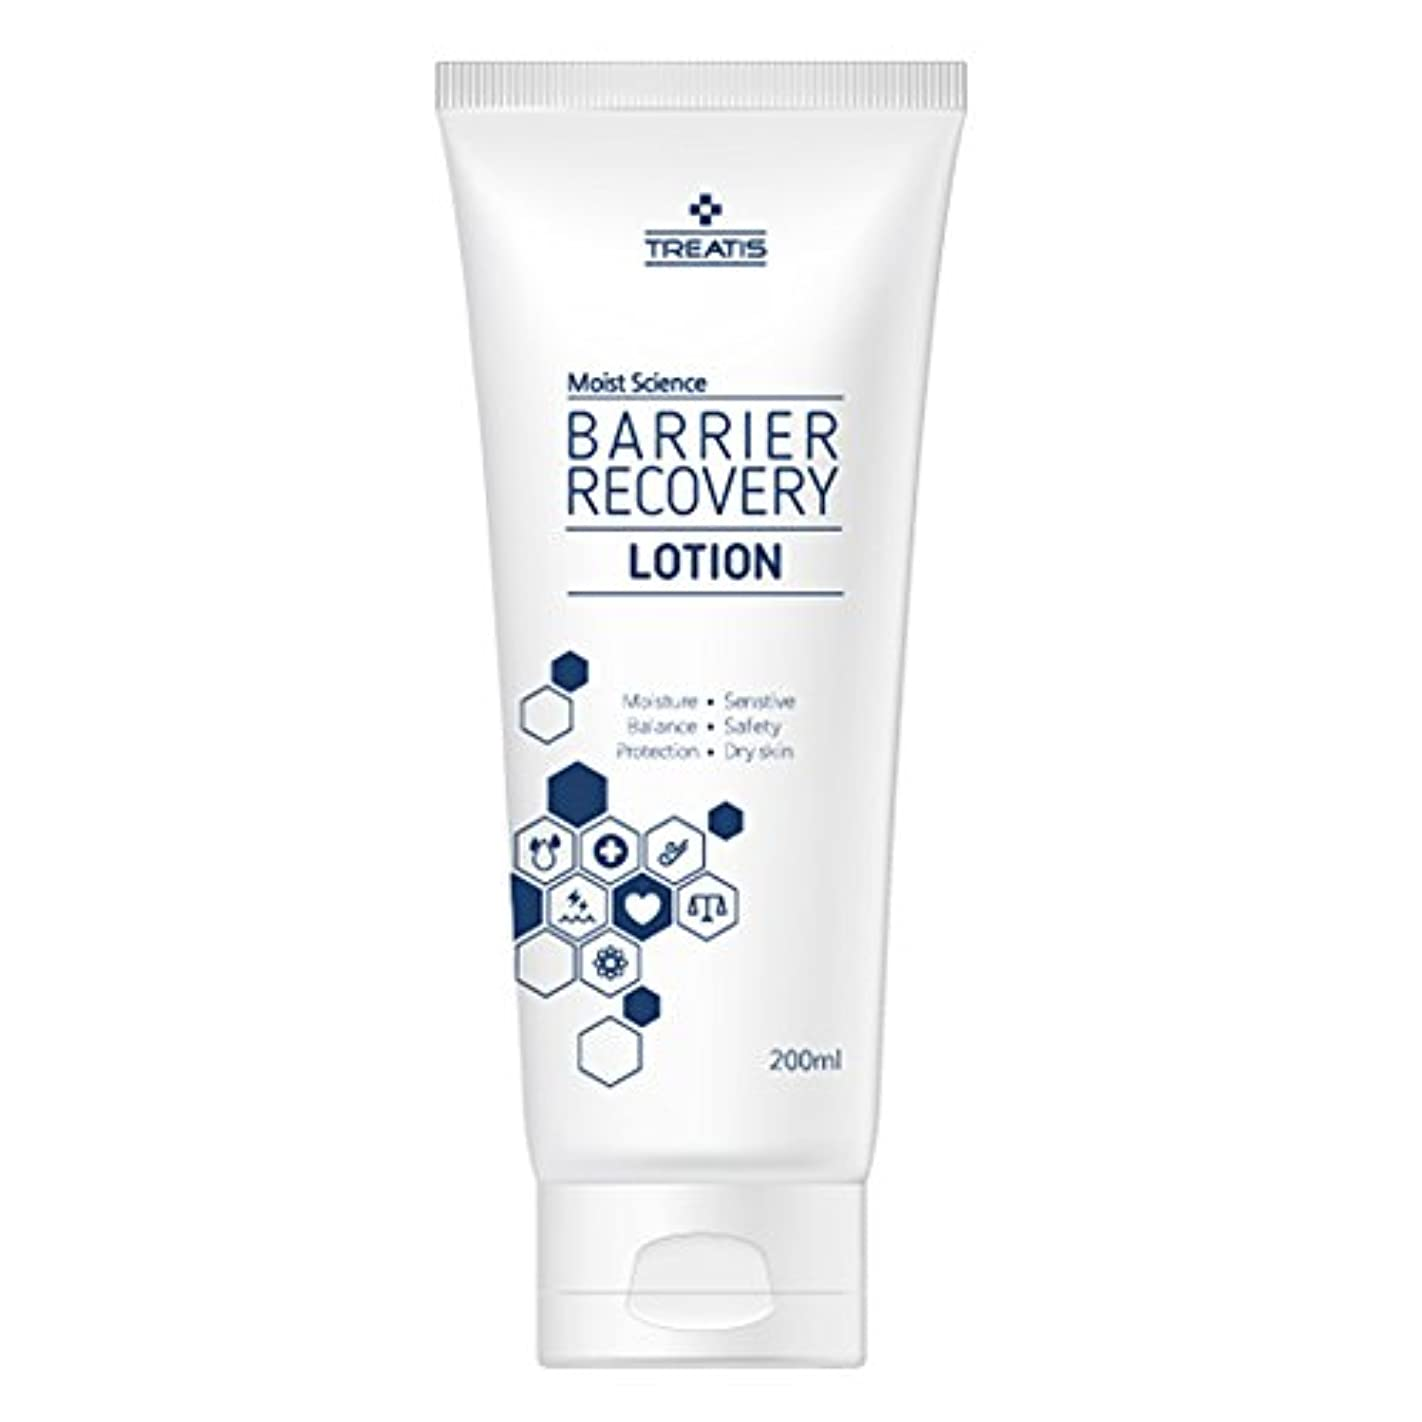 オーケストラハウスのためTreatis barrier recovery lotion 7oz (200ml)/Moisture, Senstive, Balance, Safty, Protection, Dry skin [並行輸入品]